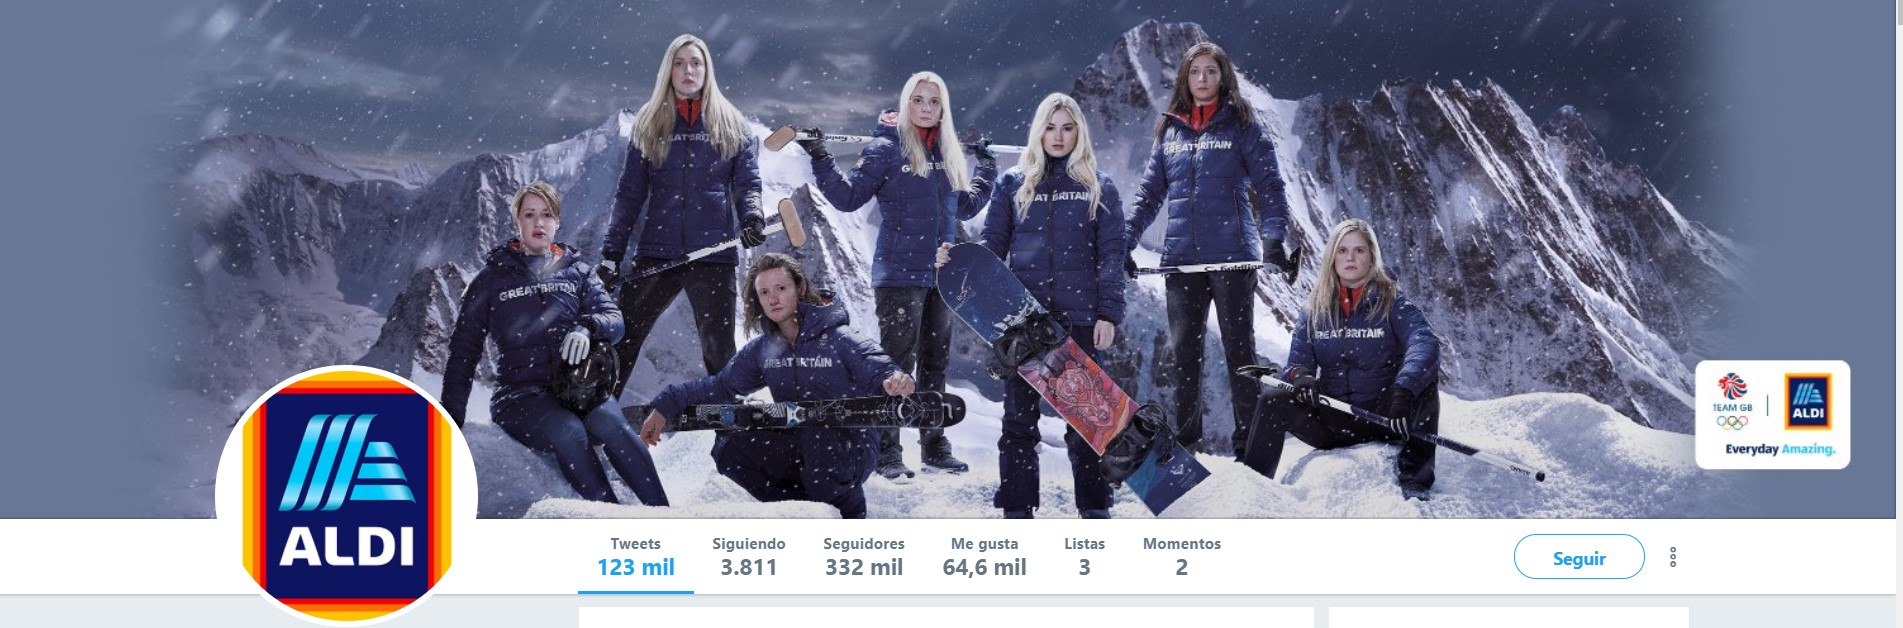 Aldi Team GB Winter Olympics.jpg